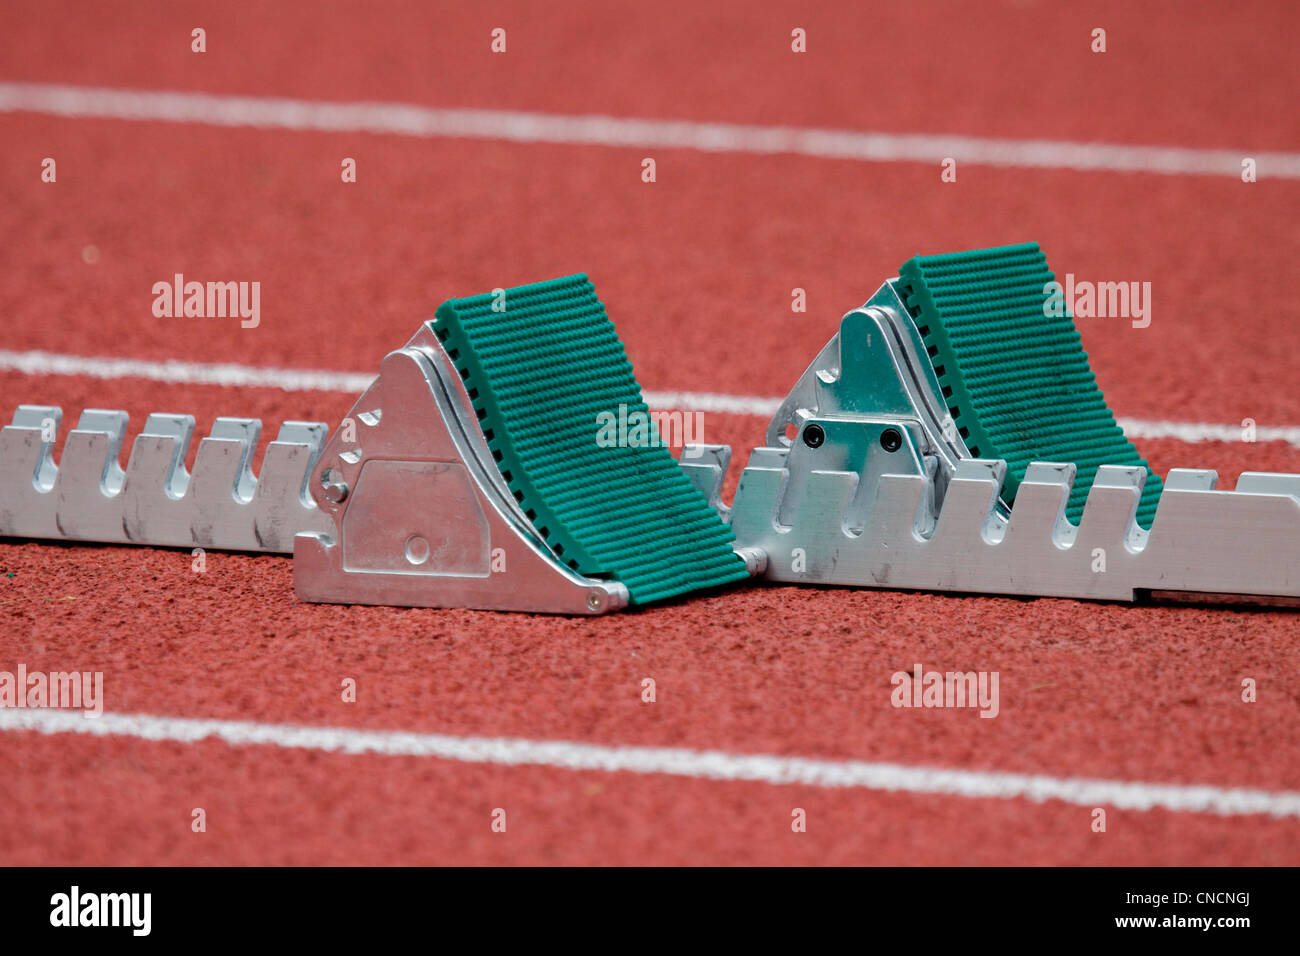 Starting blocks on a running track at the start of a  race - Stock Image